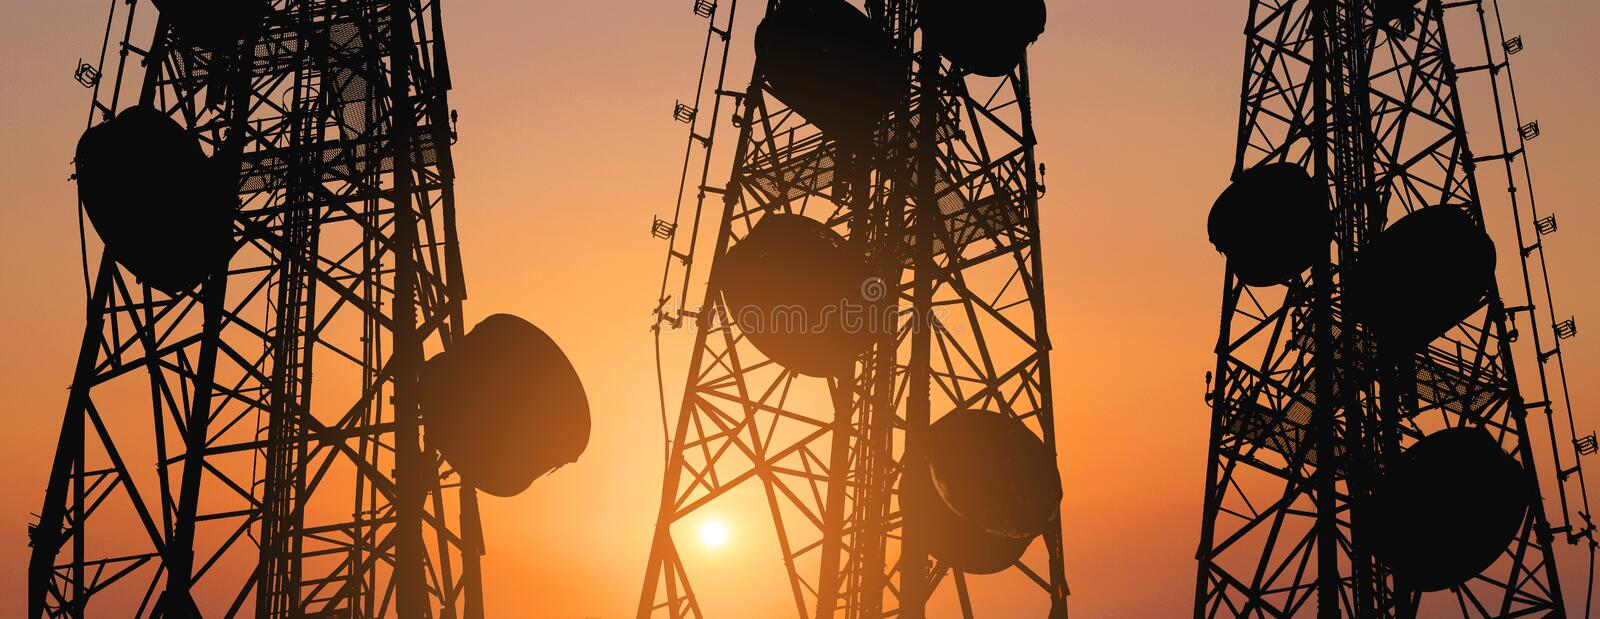 Silhouette, telecommunication towers with TV antennas and satellite dish in sunset, panorama composition. Silhouette, telecommunication towers with TV antennas stock images